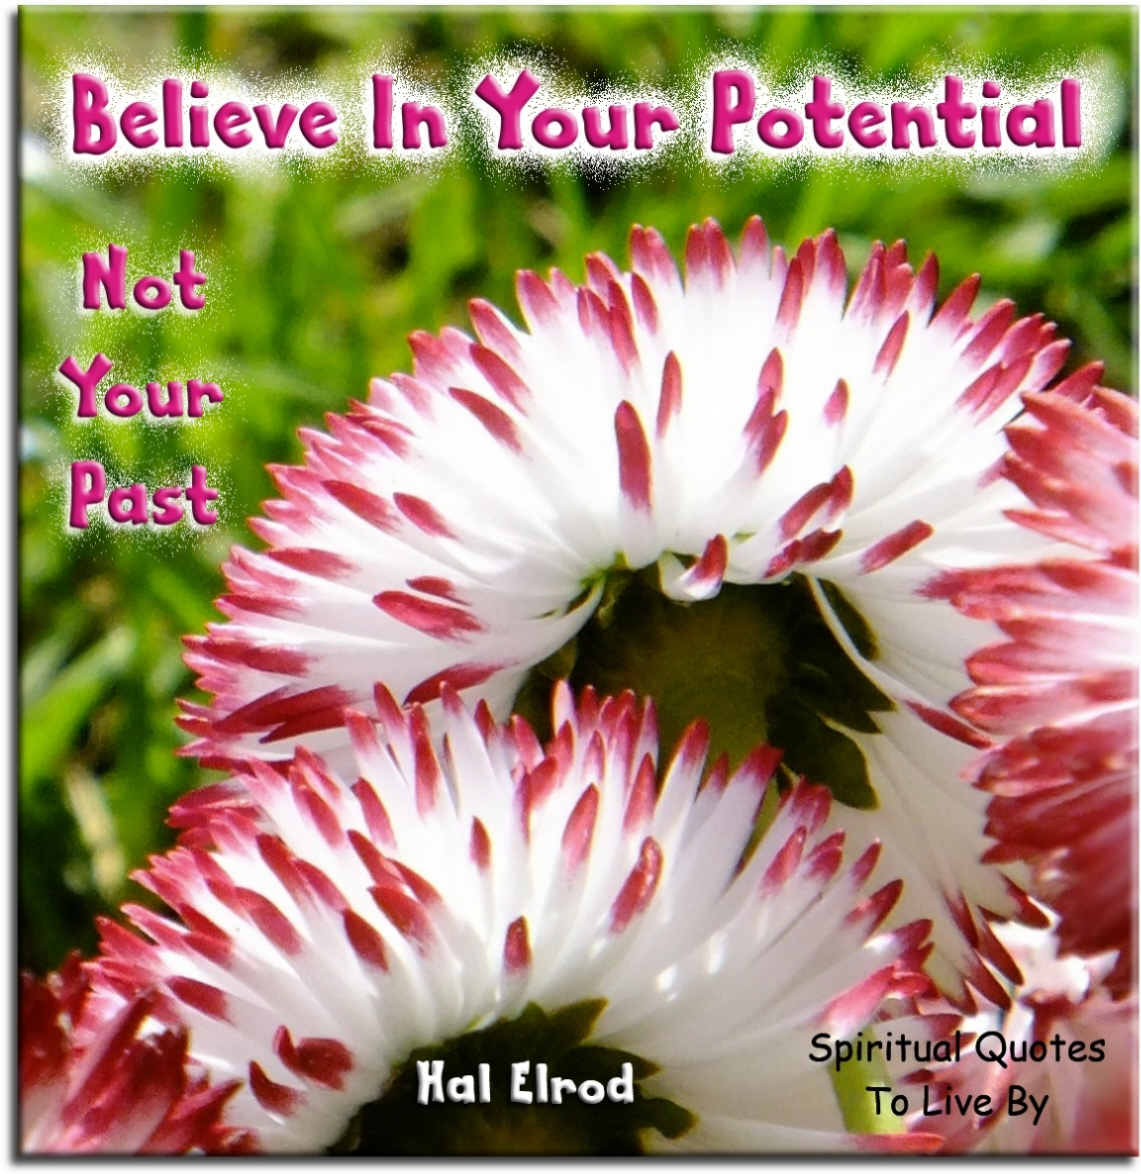 Hal Elrod quote: Believe in your potential, not your past. - Spiritual Quotes To Live By